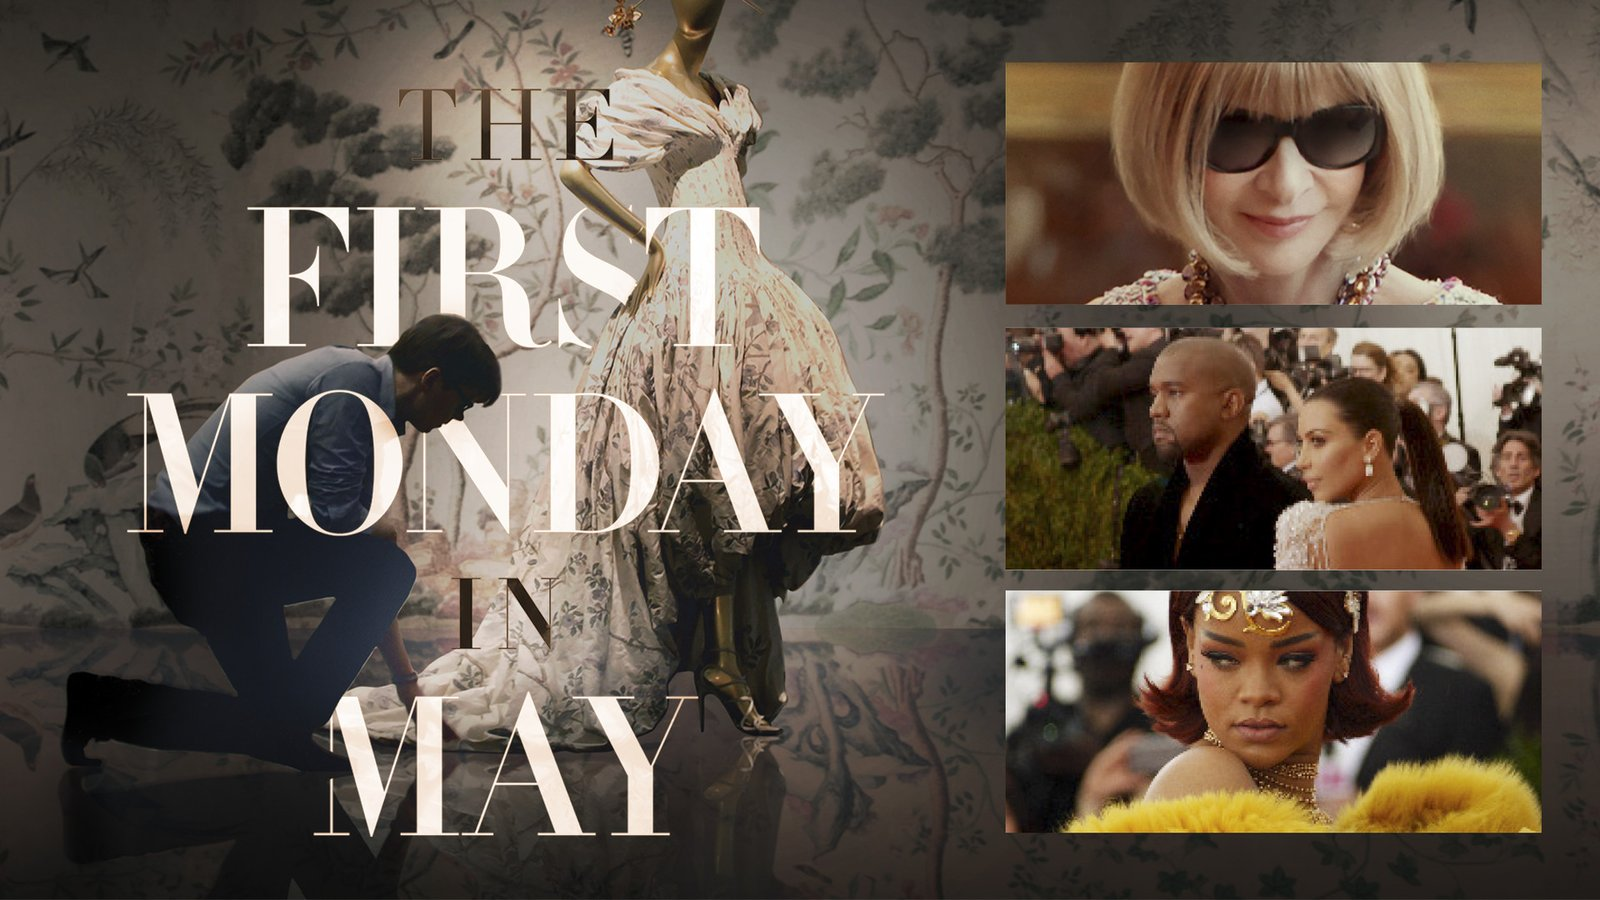 The First Monday in May - Fashion at the Met Gala